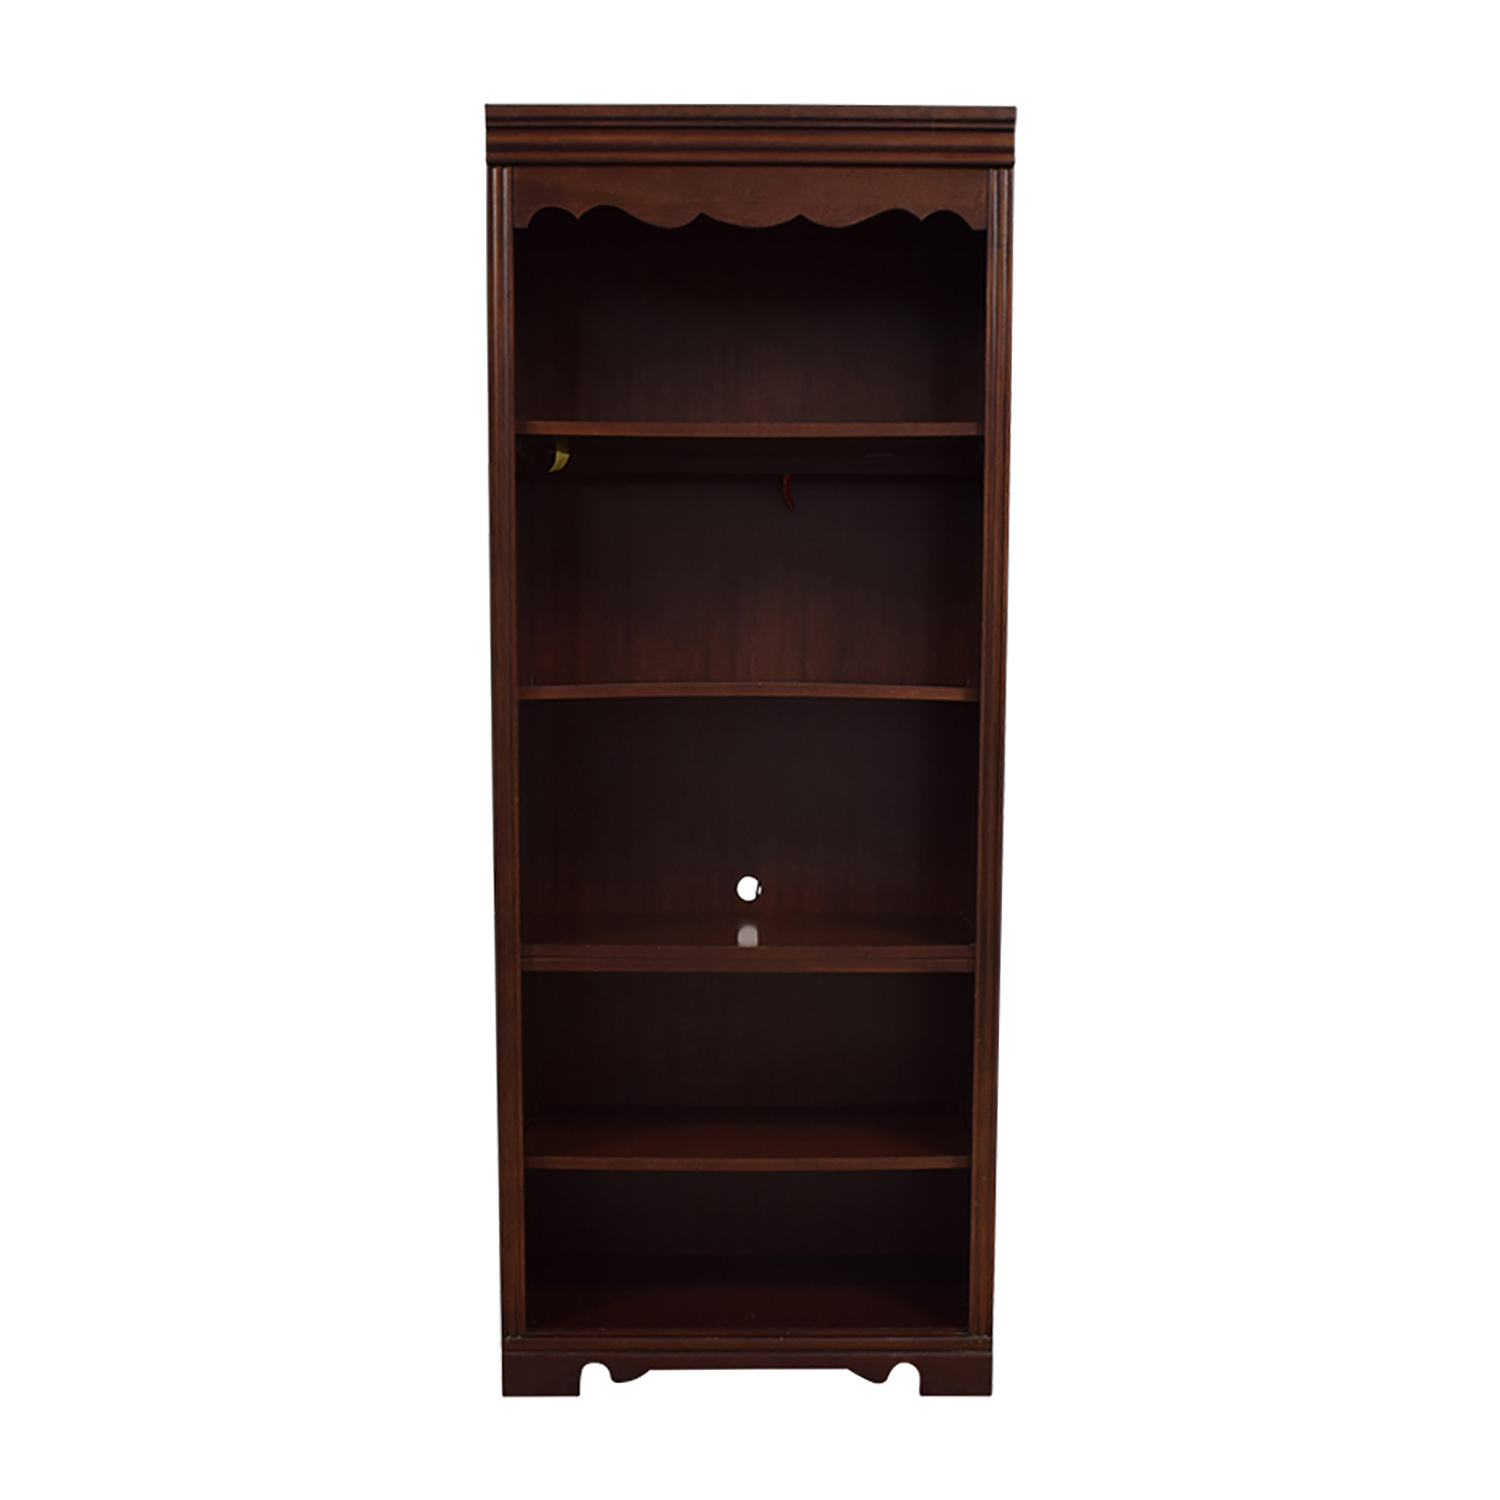 Broyhill Broyhill Dovetailed Trim Wood Bookshelf on sale